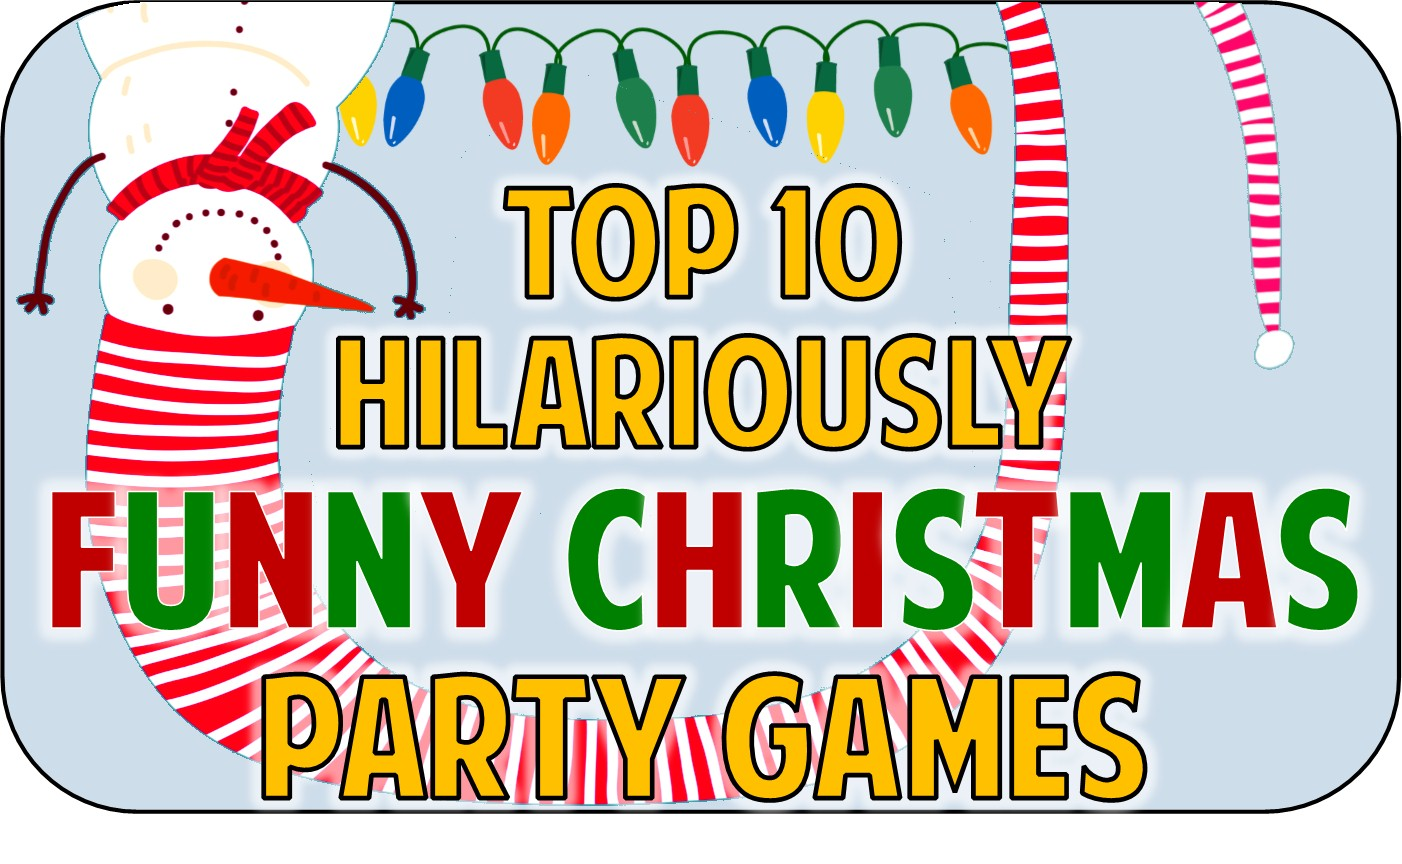 Christmas Party Office Games